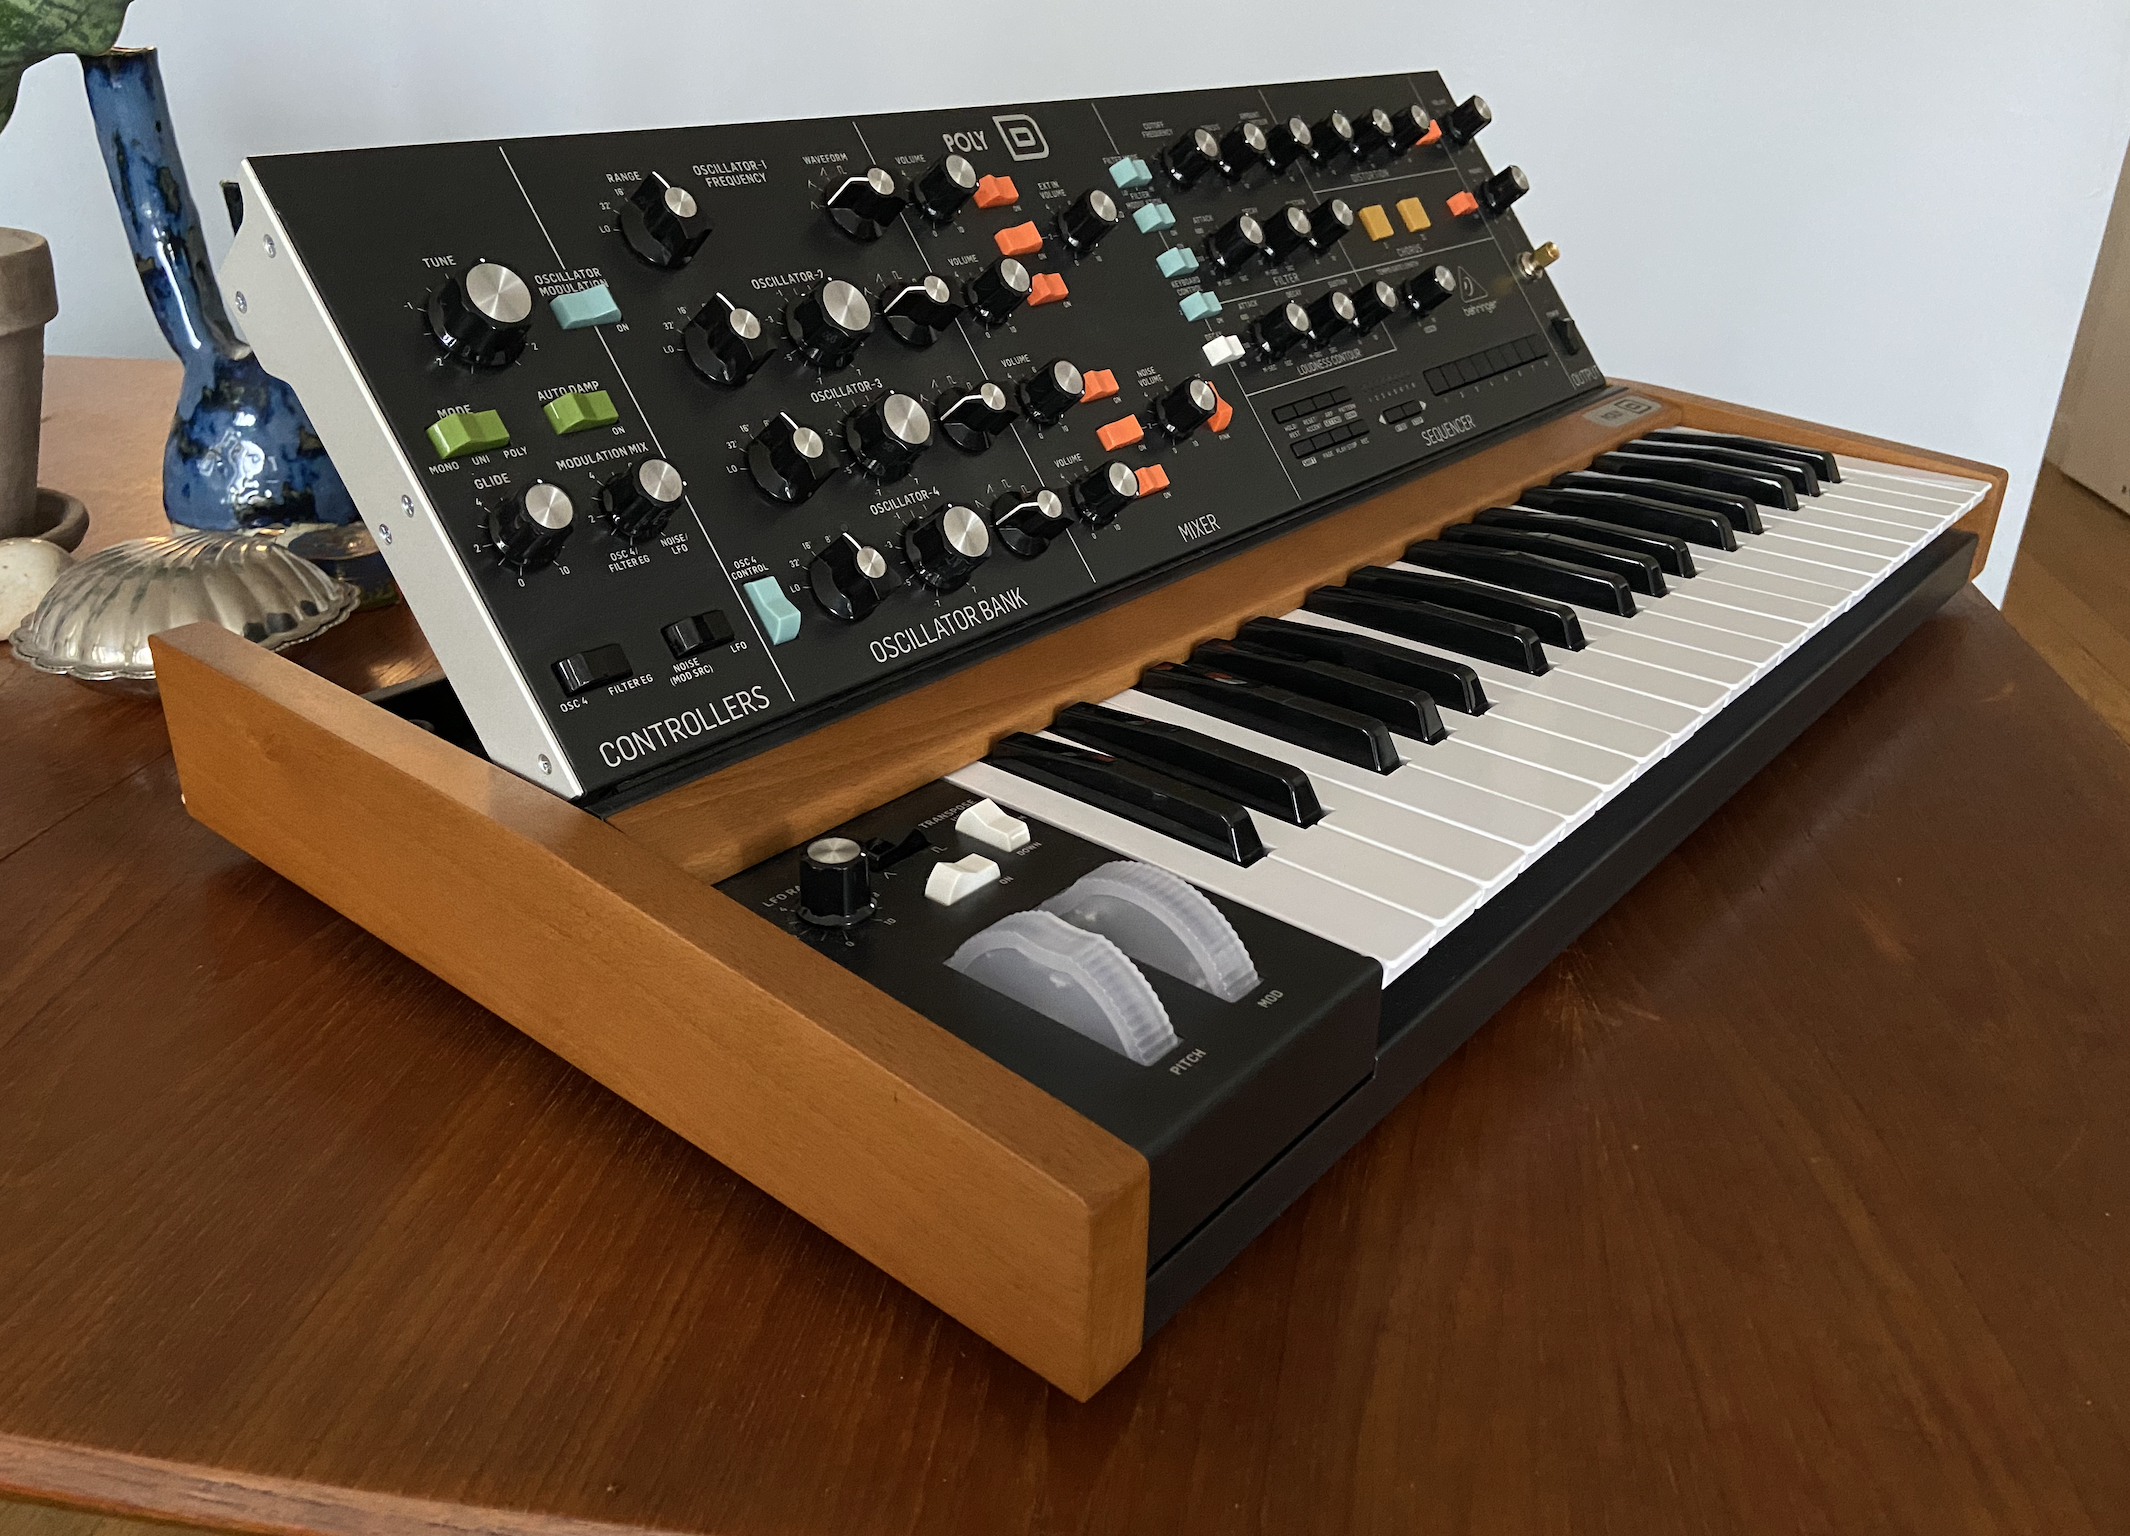 Poly D Behringer Poly D Audiofanzine Behringer has a reputation for producing clones of classic synthesizers that are a little too similar to announced today, the company's poly d makes it seem like the manufacturer could be shifting gears. poly d behringer poly d audiofanzine